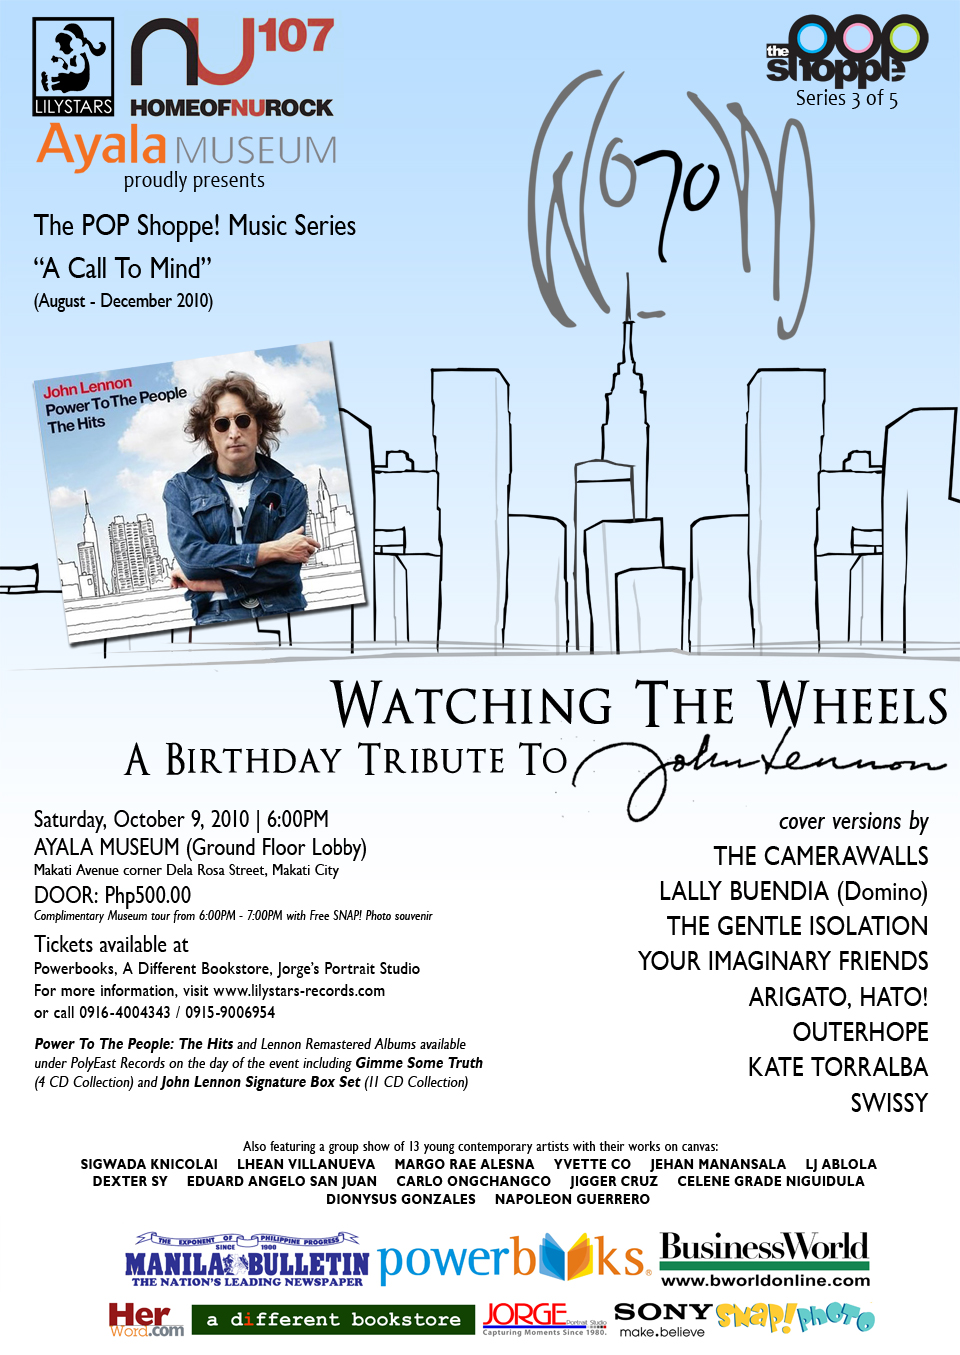 Watching The Wheels: A Birthday Tribute to John Lennon